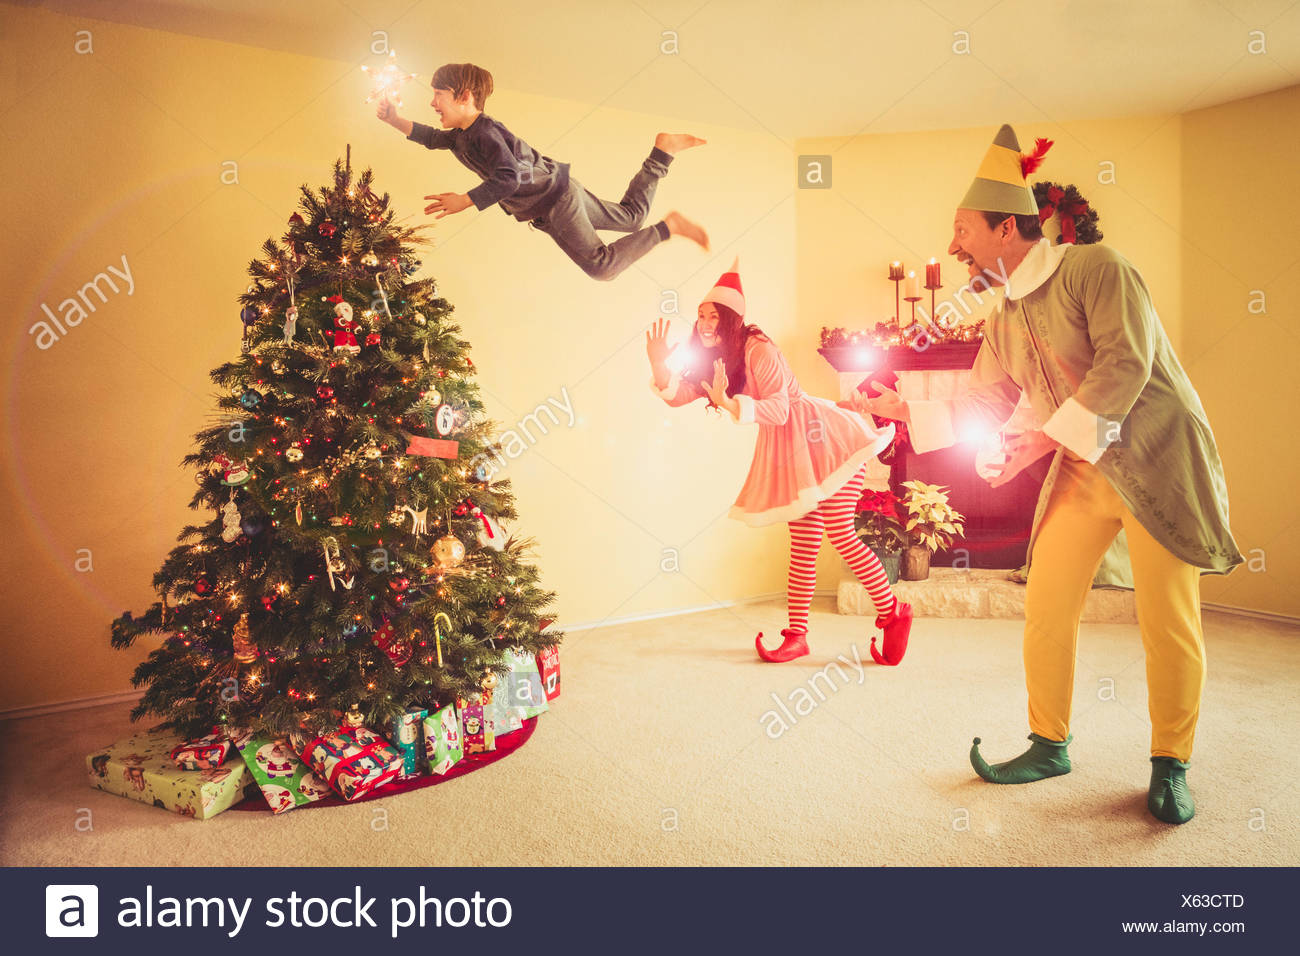 Digital Composite Image Of Happy Family Decorating Christmas Tree At Home - Stock Image